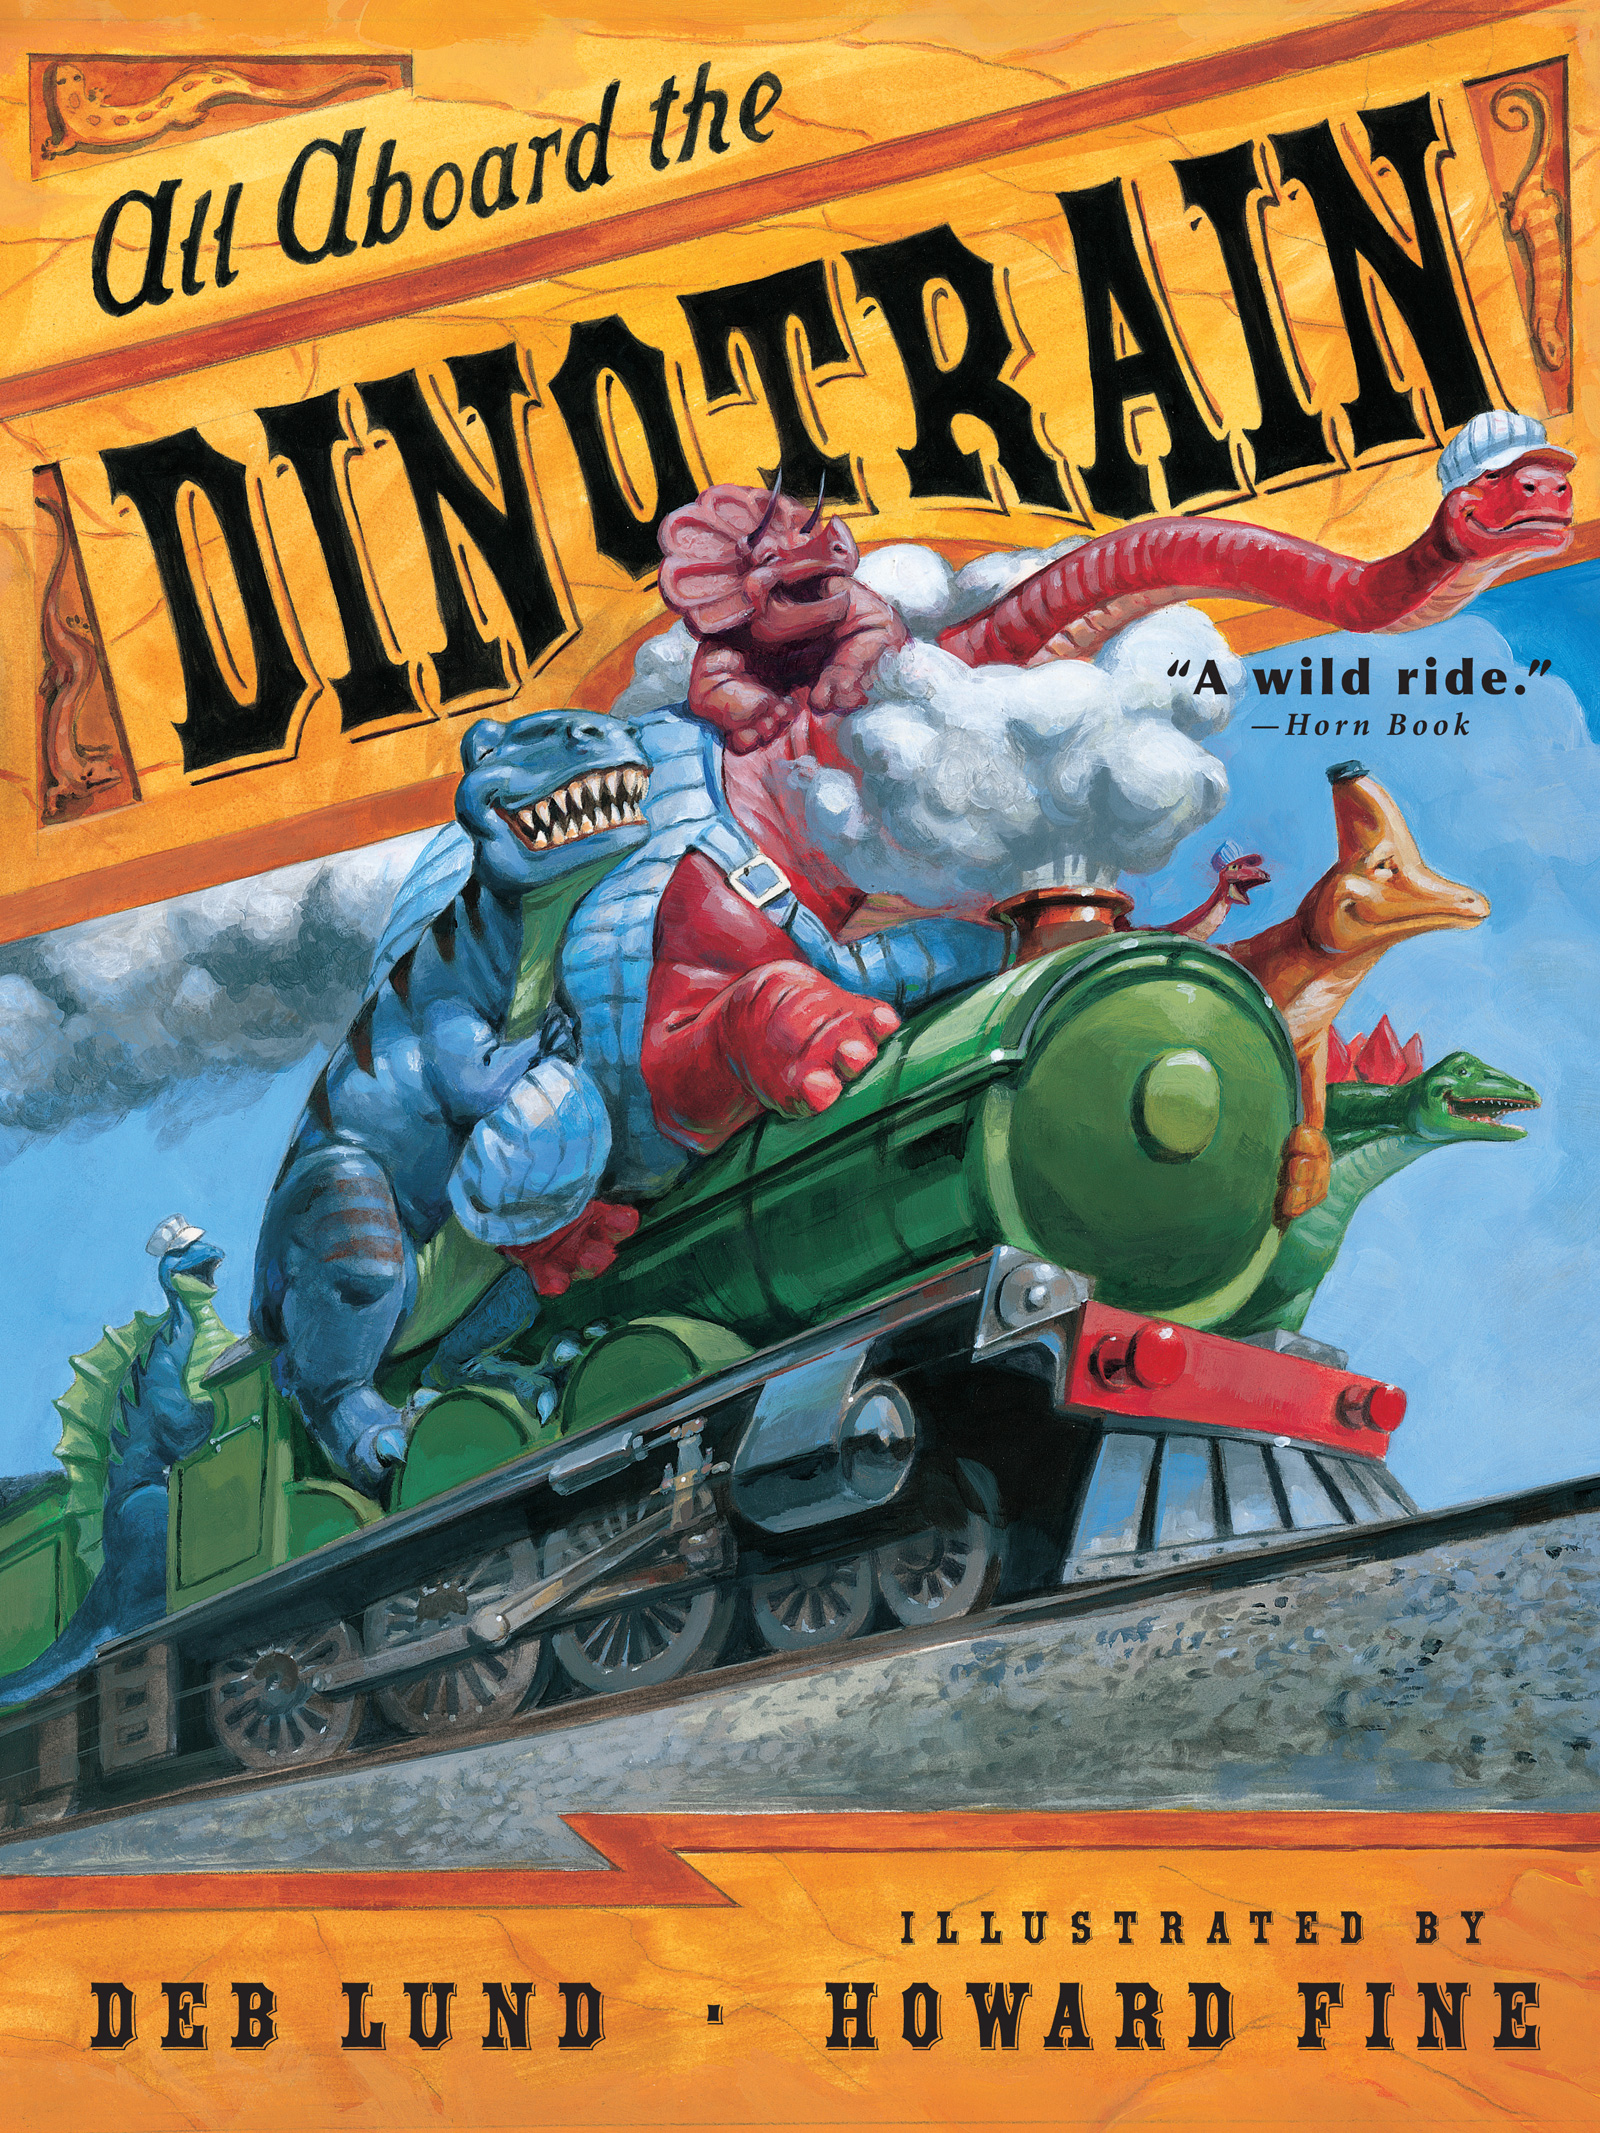 All Aboard the Dinotrain-9780547248257